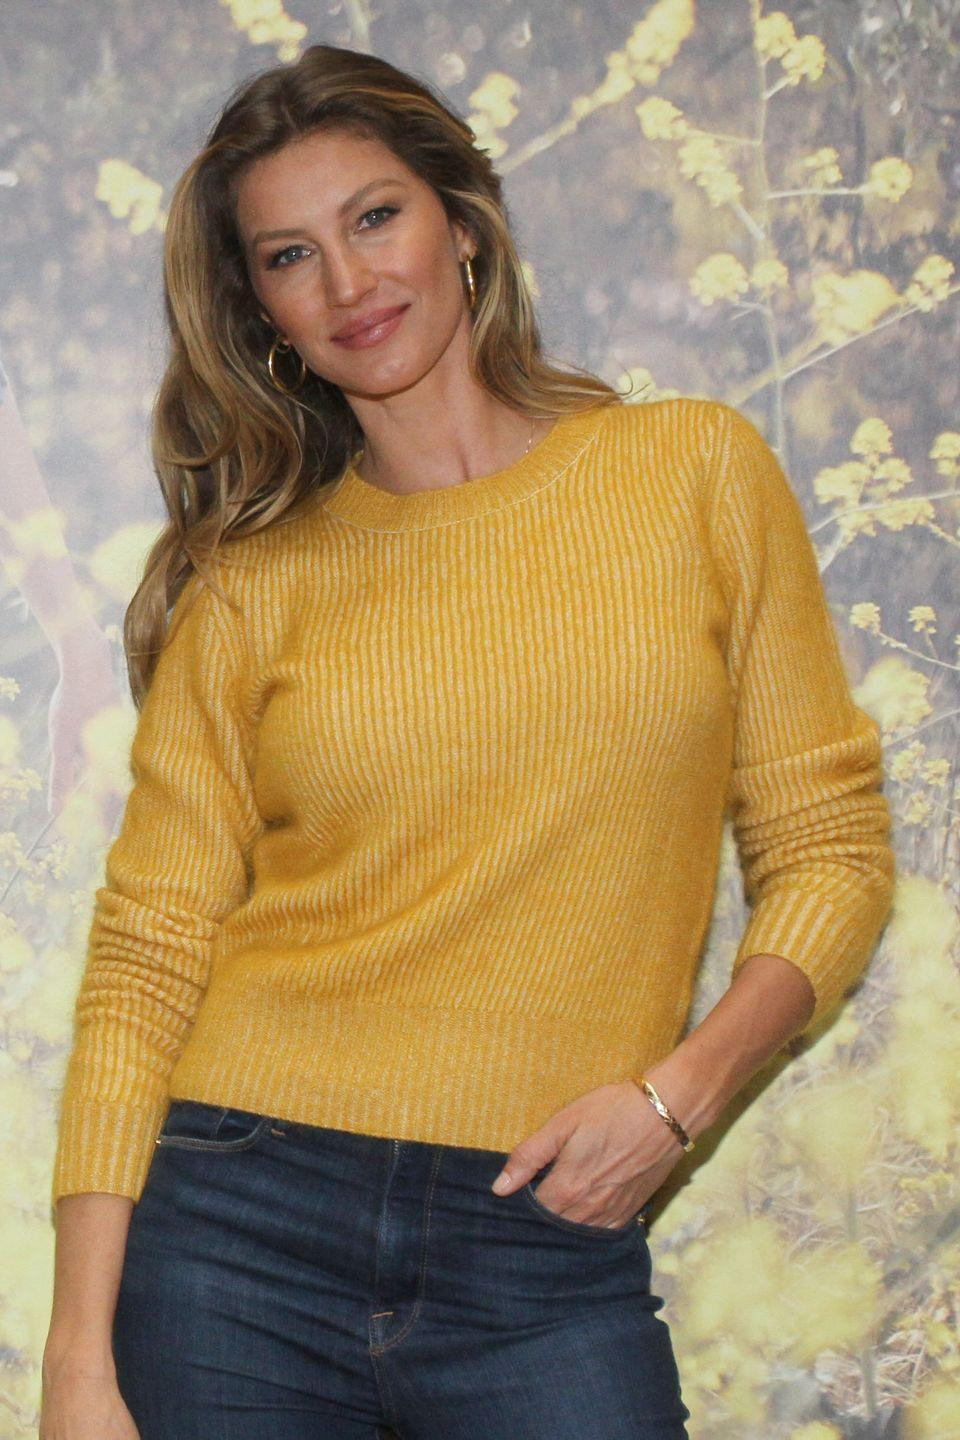 "<p>After breastfeeding two of her children, supermodel Gisele Bündchen got breast implants and immediately regretted the decision. ""I felt very vulnerable, because I can work out, I can eat healthy, but I can't change the fact that both of my kids enjoyed the left boob more than the right. All I wanted was for them to be even and for people to stop commenting on it,"" <a href=""https://people.com/style/gisele-bundchen-boob-job-breastfeeding-kids-regret/"" rel=""nofollow noopener"" target=""_blank"" data-ylk=""slk:Gisele told People"" class=""link rapid-noclick-resp"">Gisele told <em>People</em></a>. ""When I woke up, I was like, 'What have I done?' I felt like I was living in a body I didn't recognise. For the first year I wore [baggy] clothes because I felt uncomfortable.""</p>"